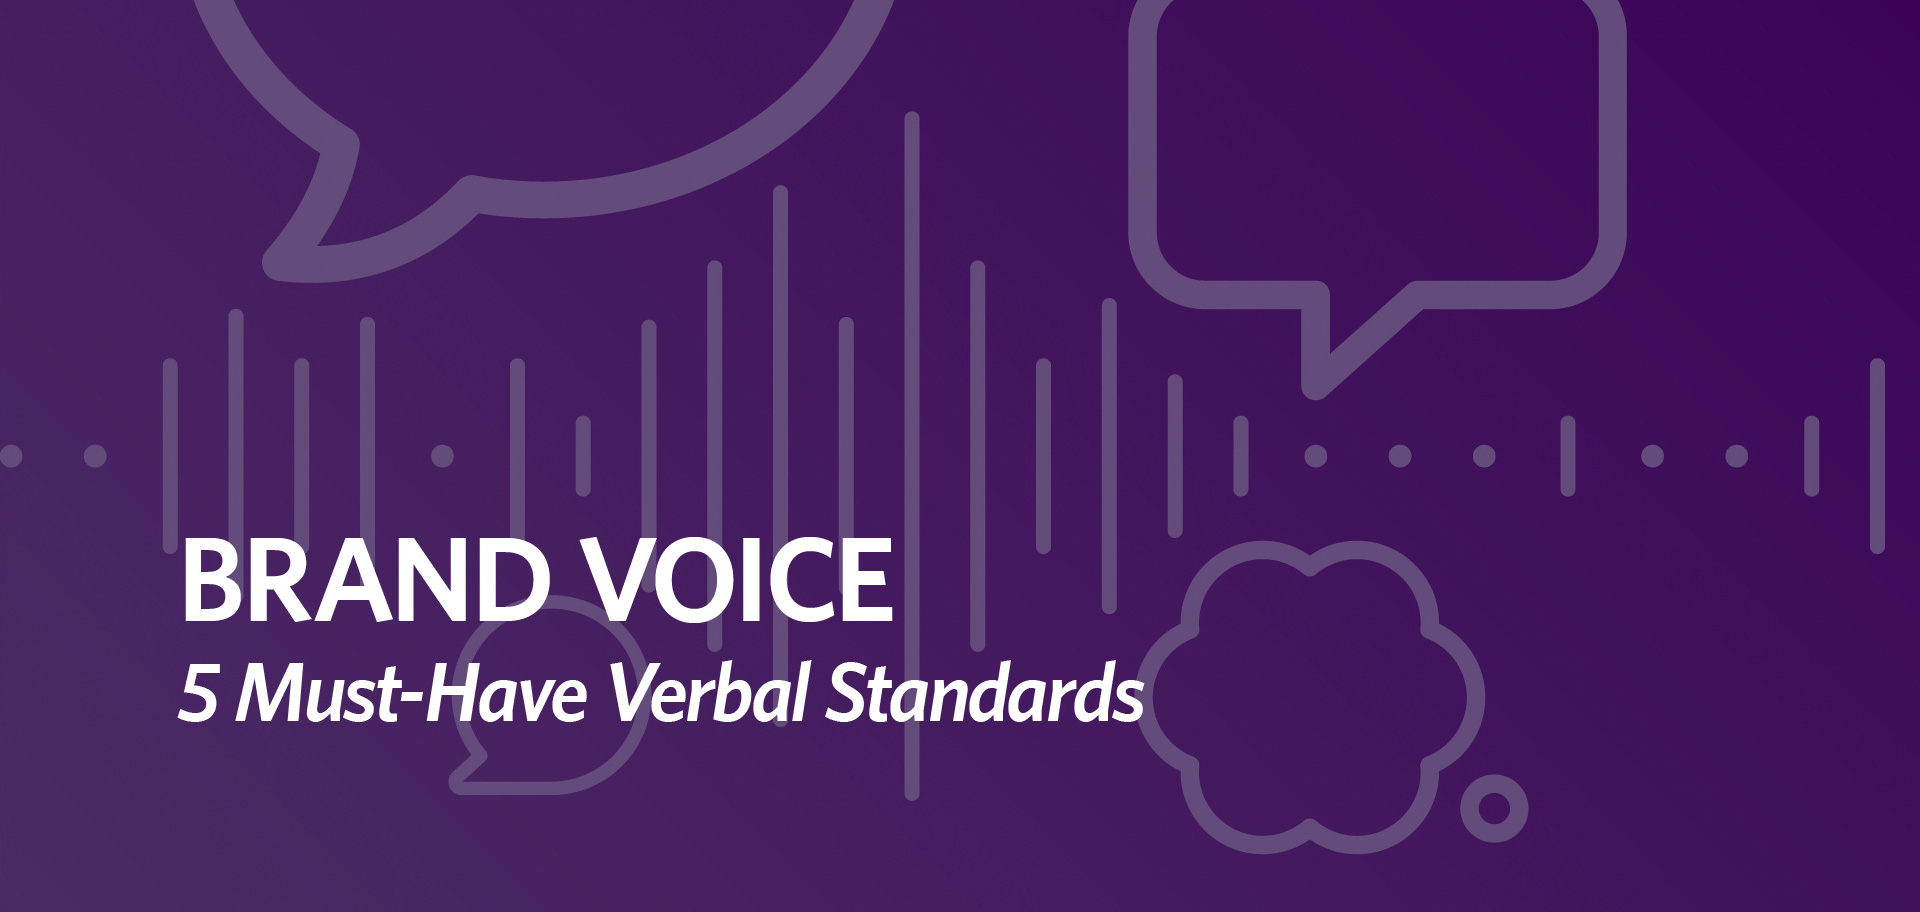 Brand voice: 5 must-have verbal standards by Kettle Fire Creative brand voice Brand Voice: 5 Must-Have Verbal Standards verbal standards fi